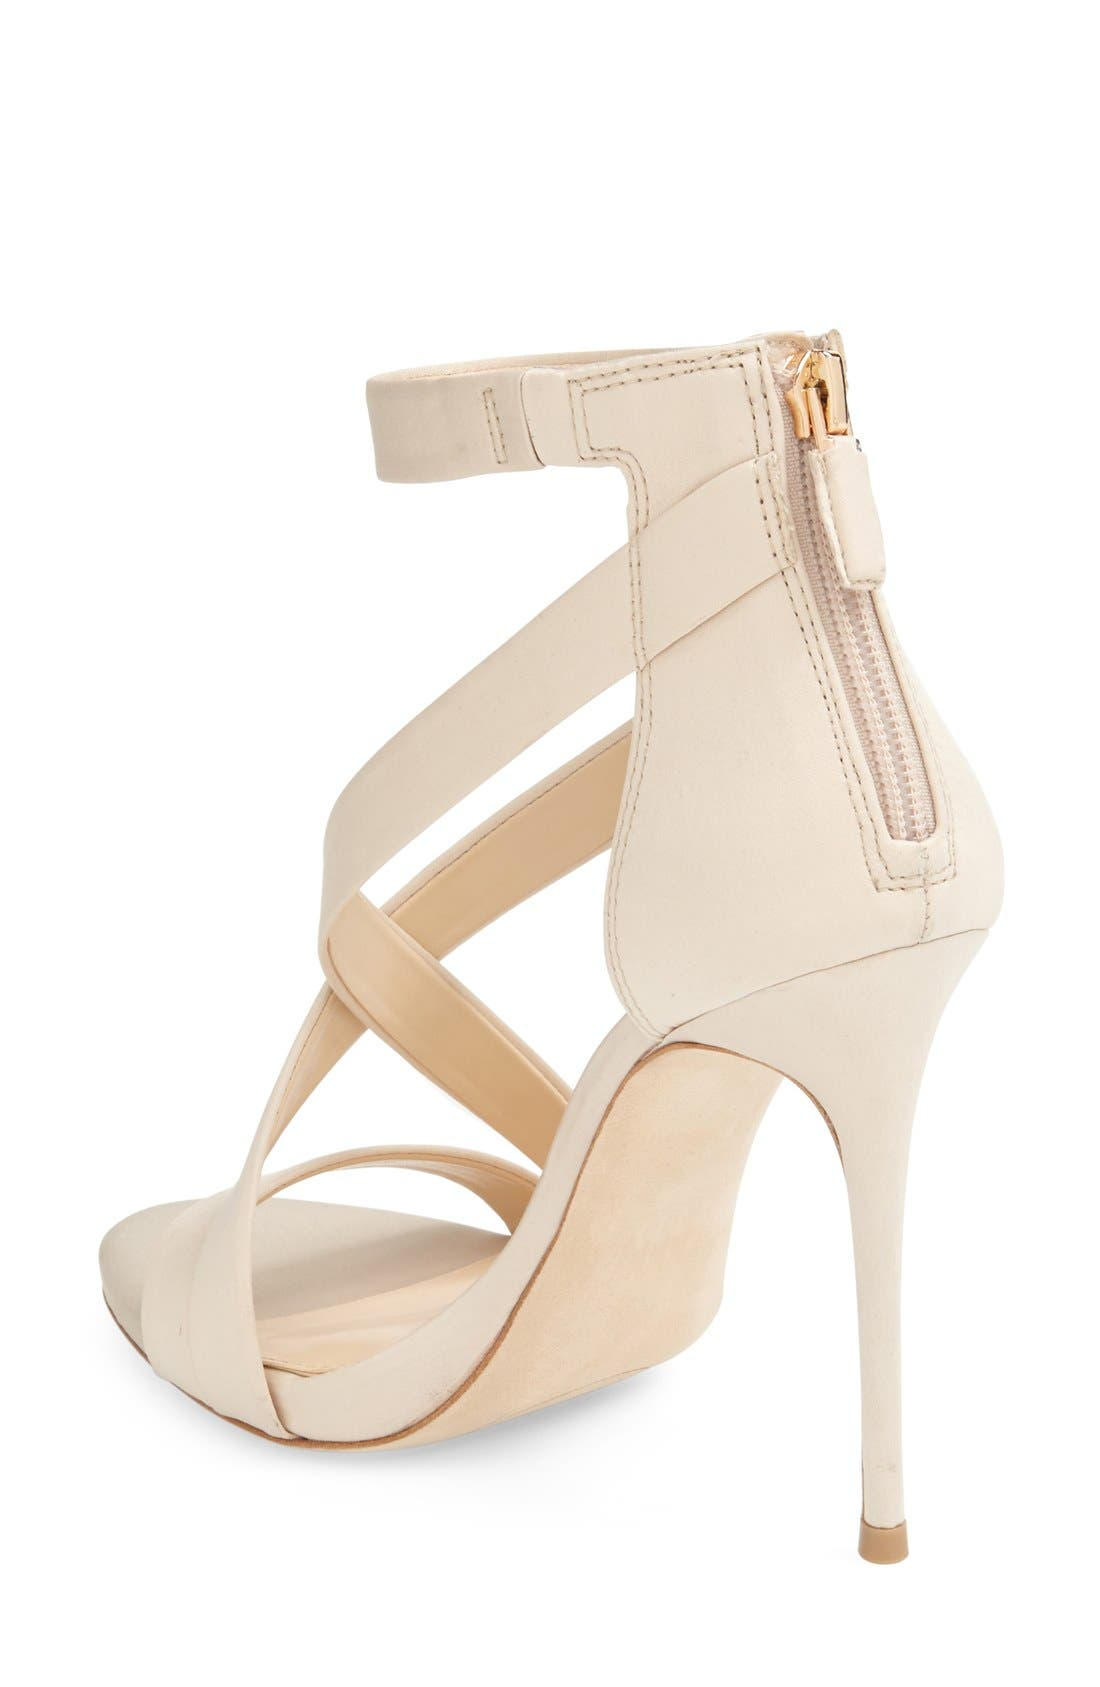 IMAGINE BY VINCE CAMUTO, Imagine Vince Camuto 'Devin' Sandal, Alternate thumbnail 2, color, LIGHT SAND